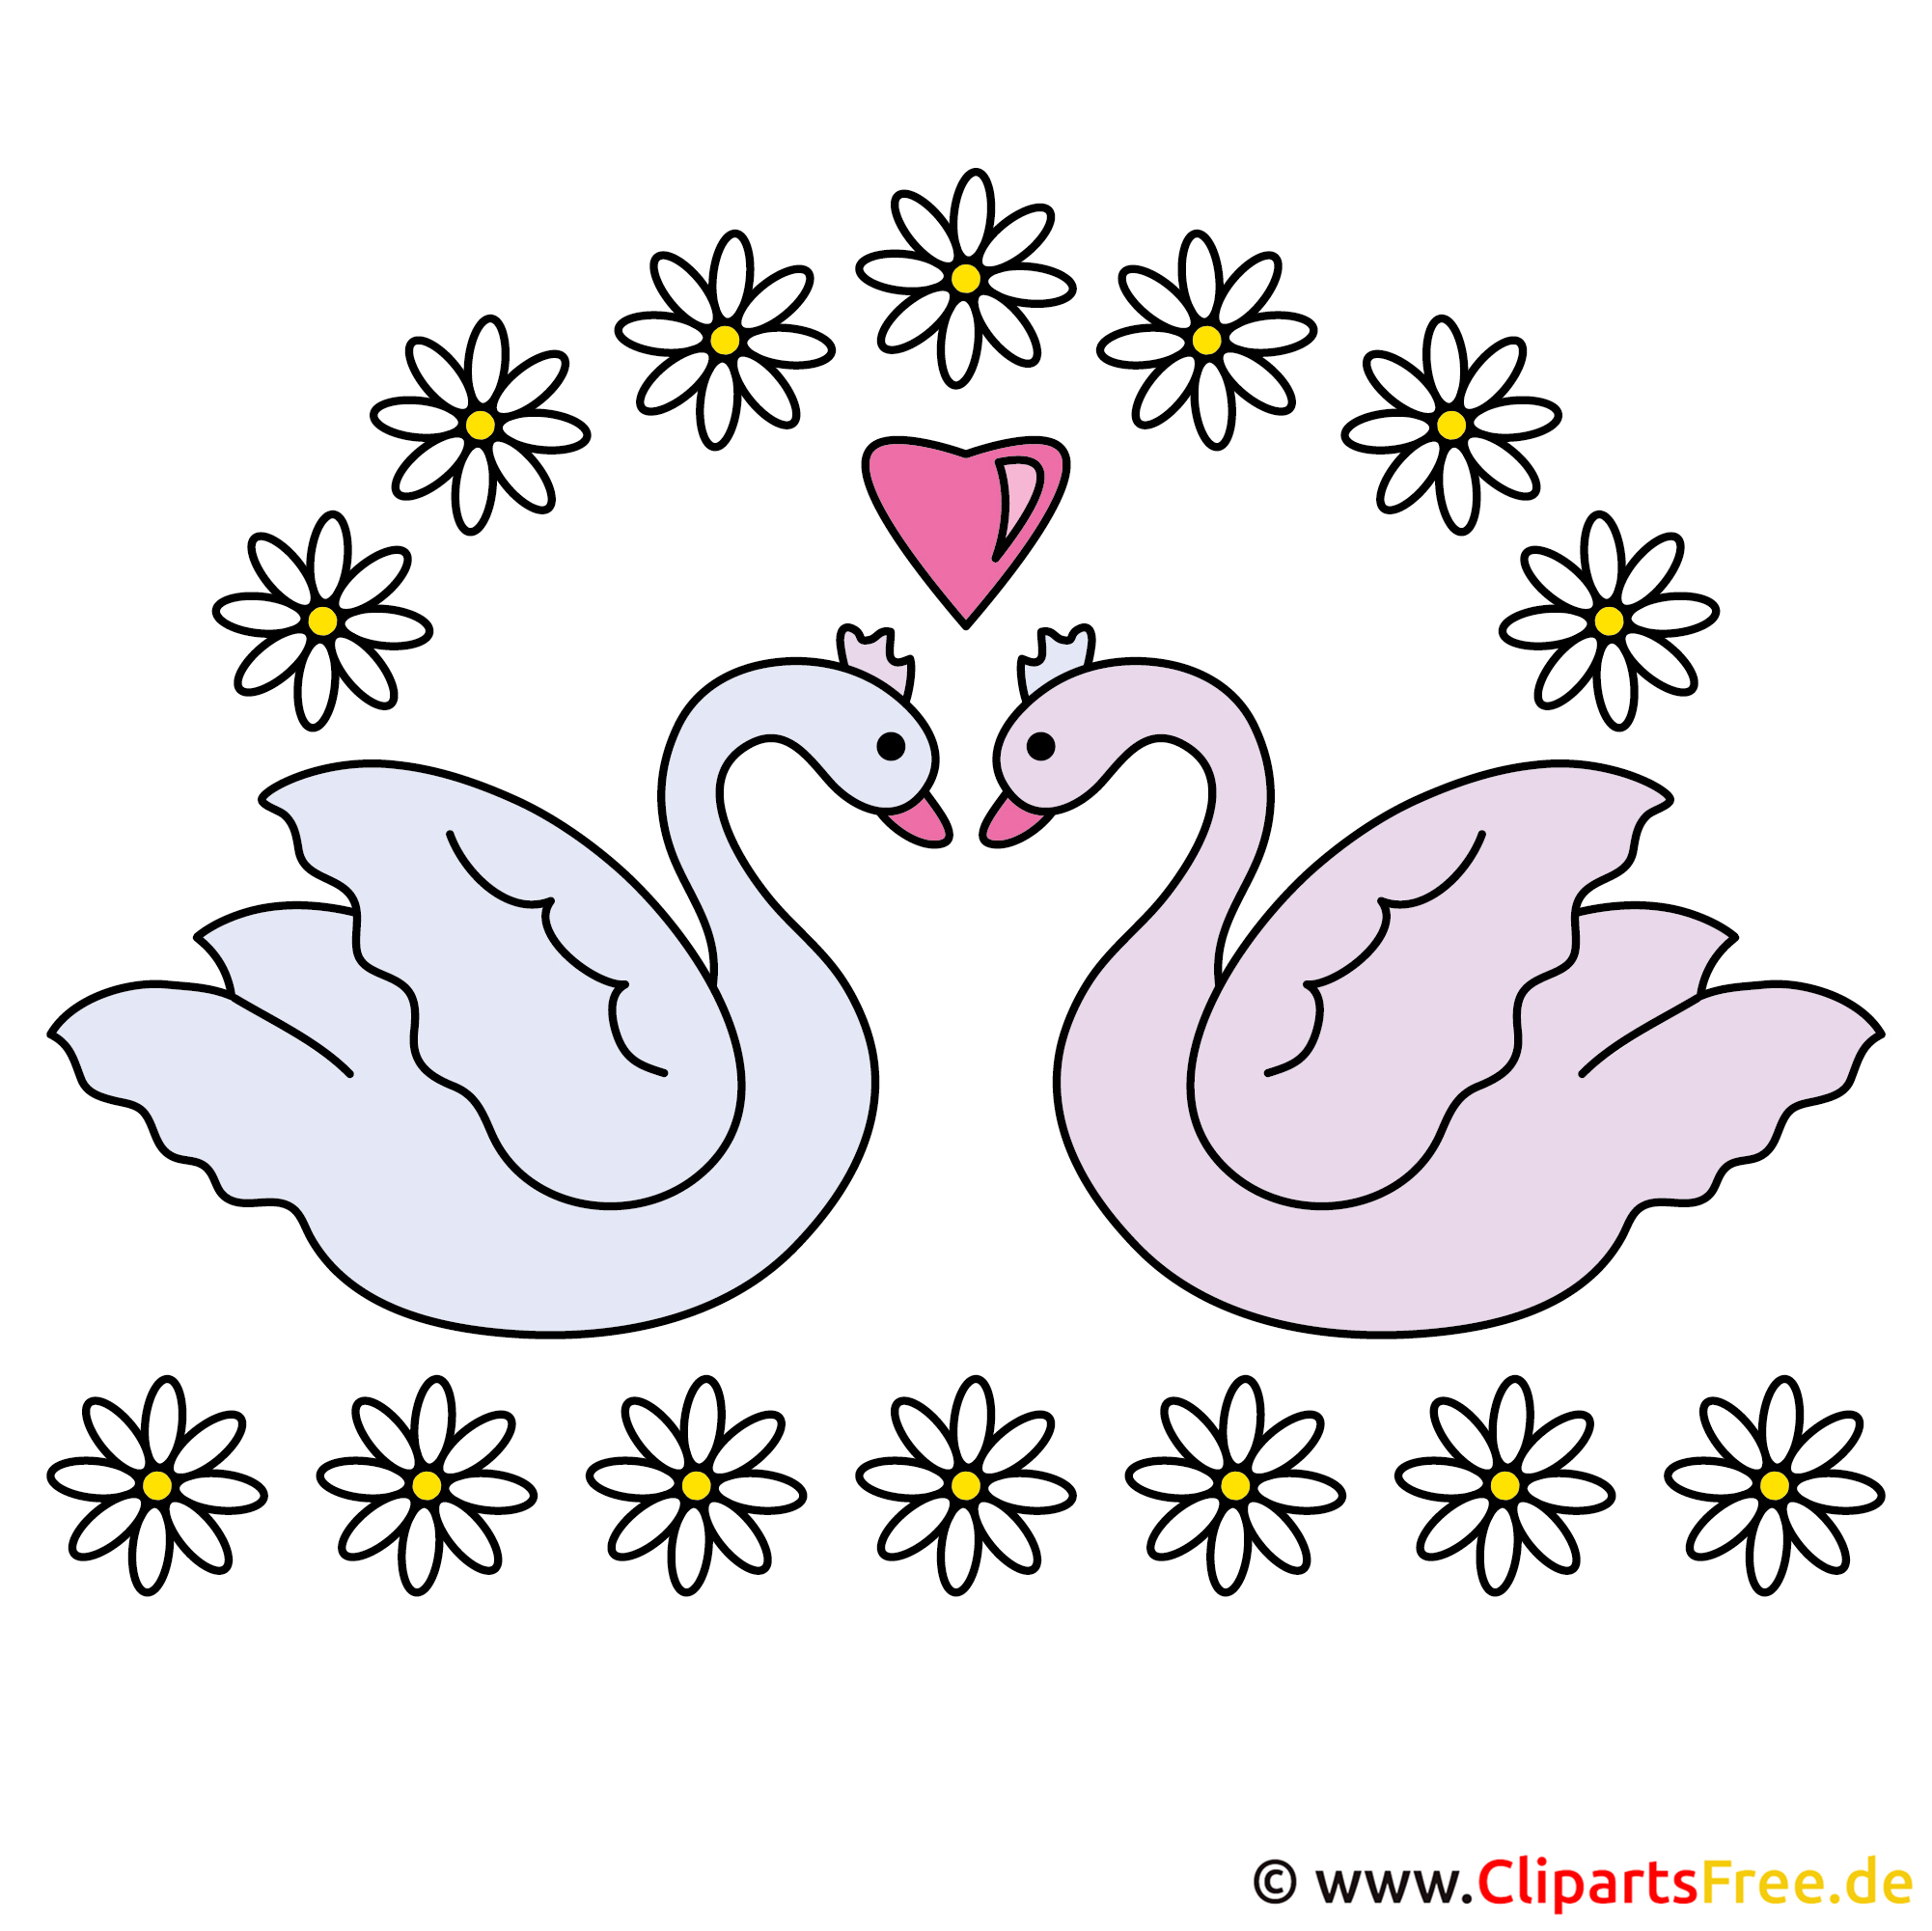 Clipart free Wedding